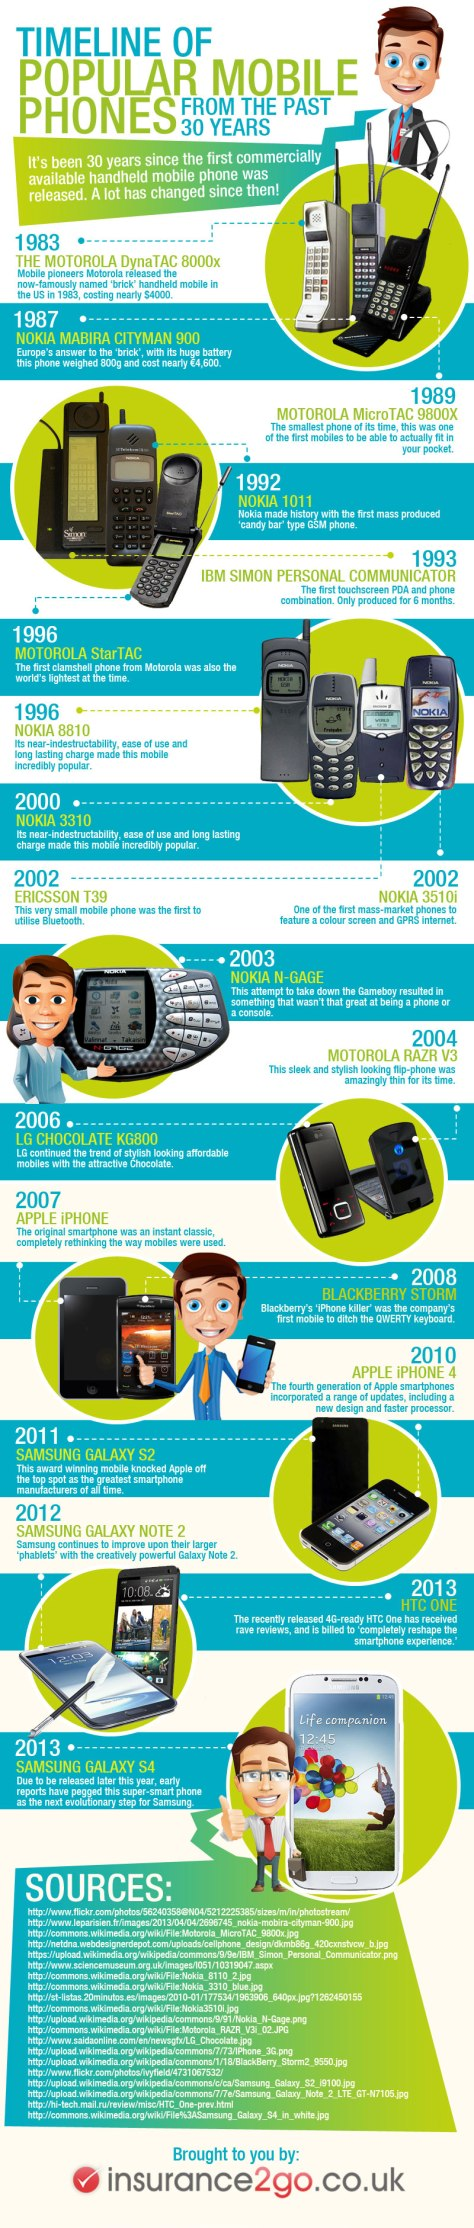 a-brief-history-of-mobile-phones_5189047465a92